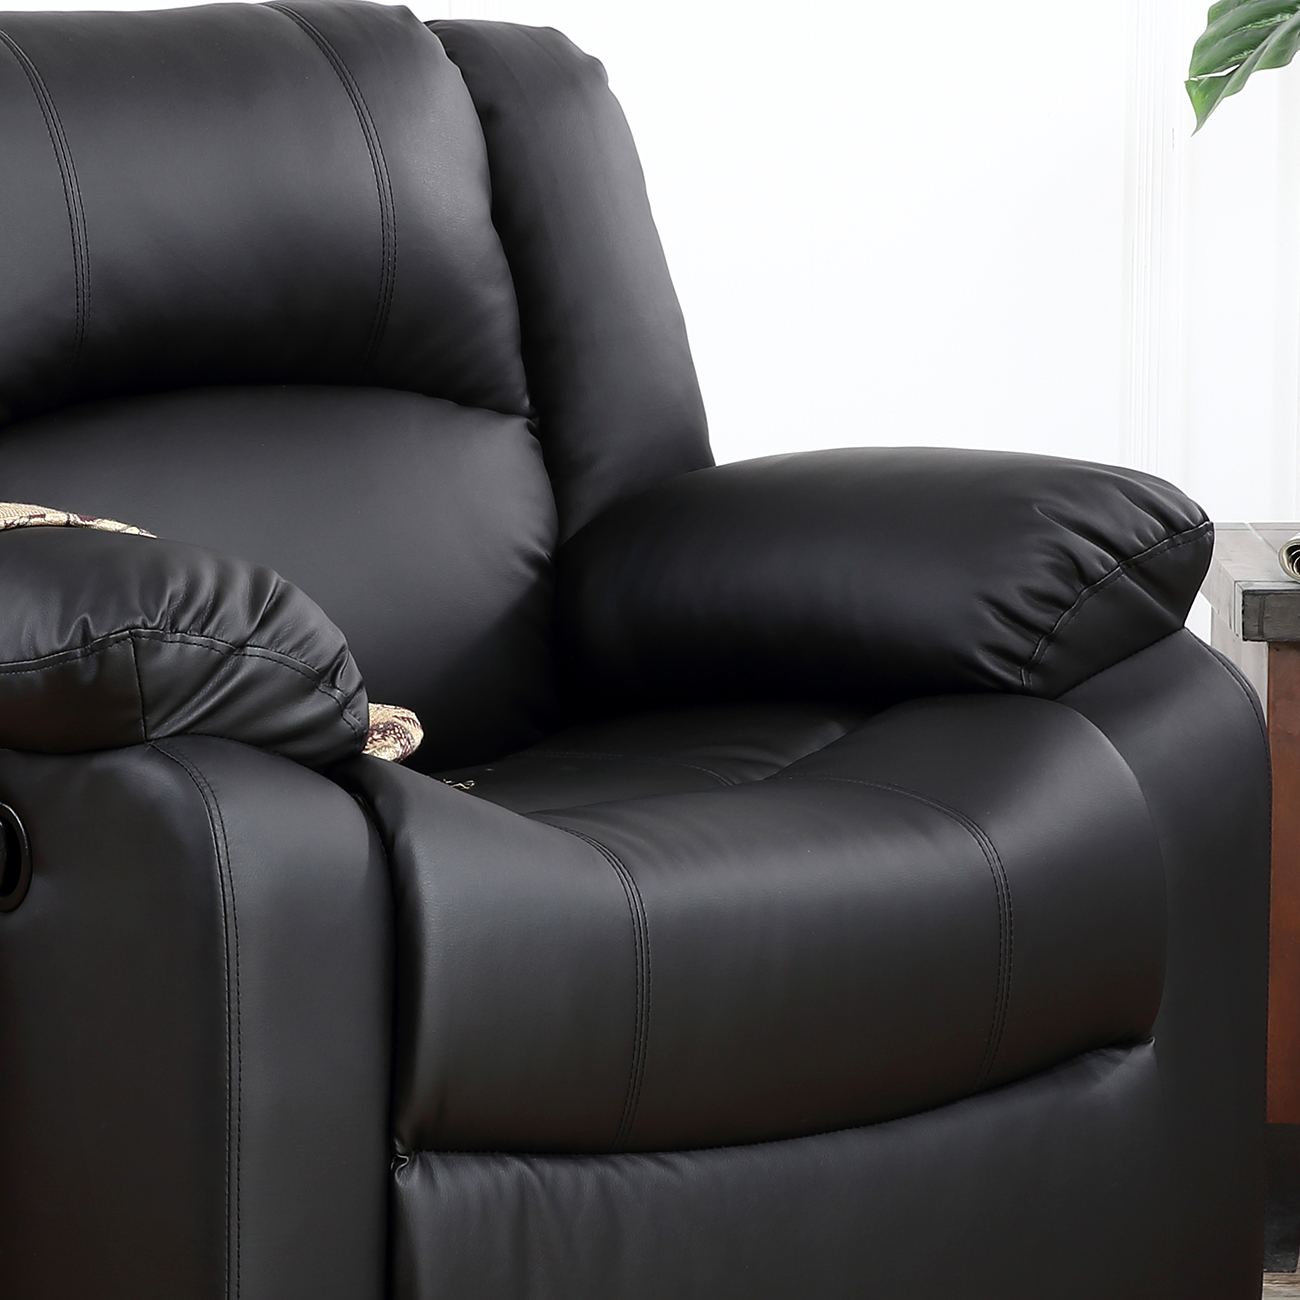 Classic Bonded Leather Oversize Padding Recliner Chair TV Room Theater,  Black